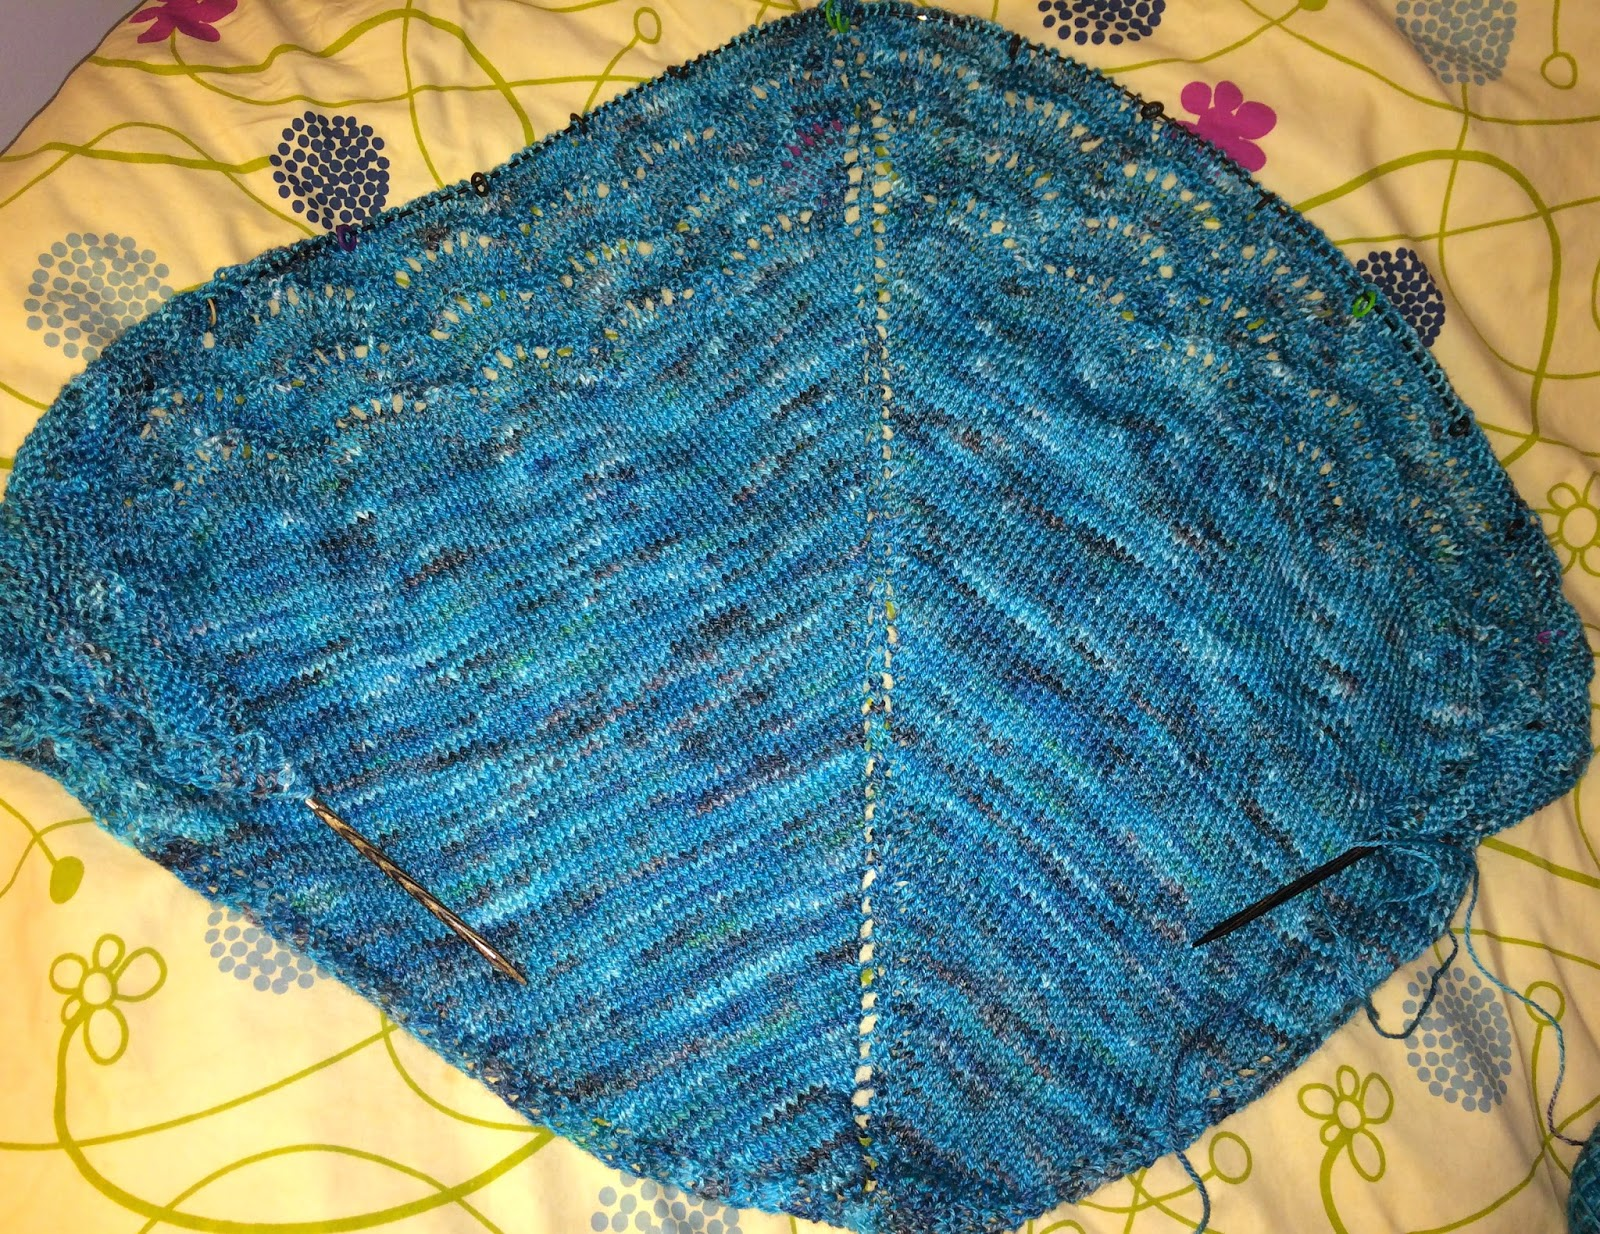 Holden Shawlette from The Artful Yarn - Day 4 6